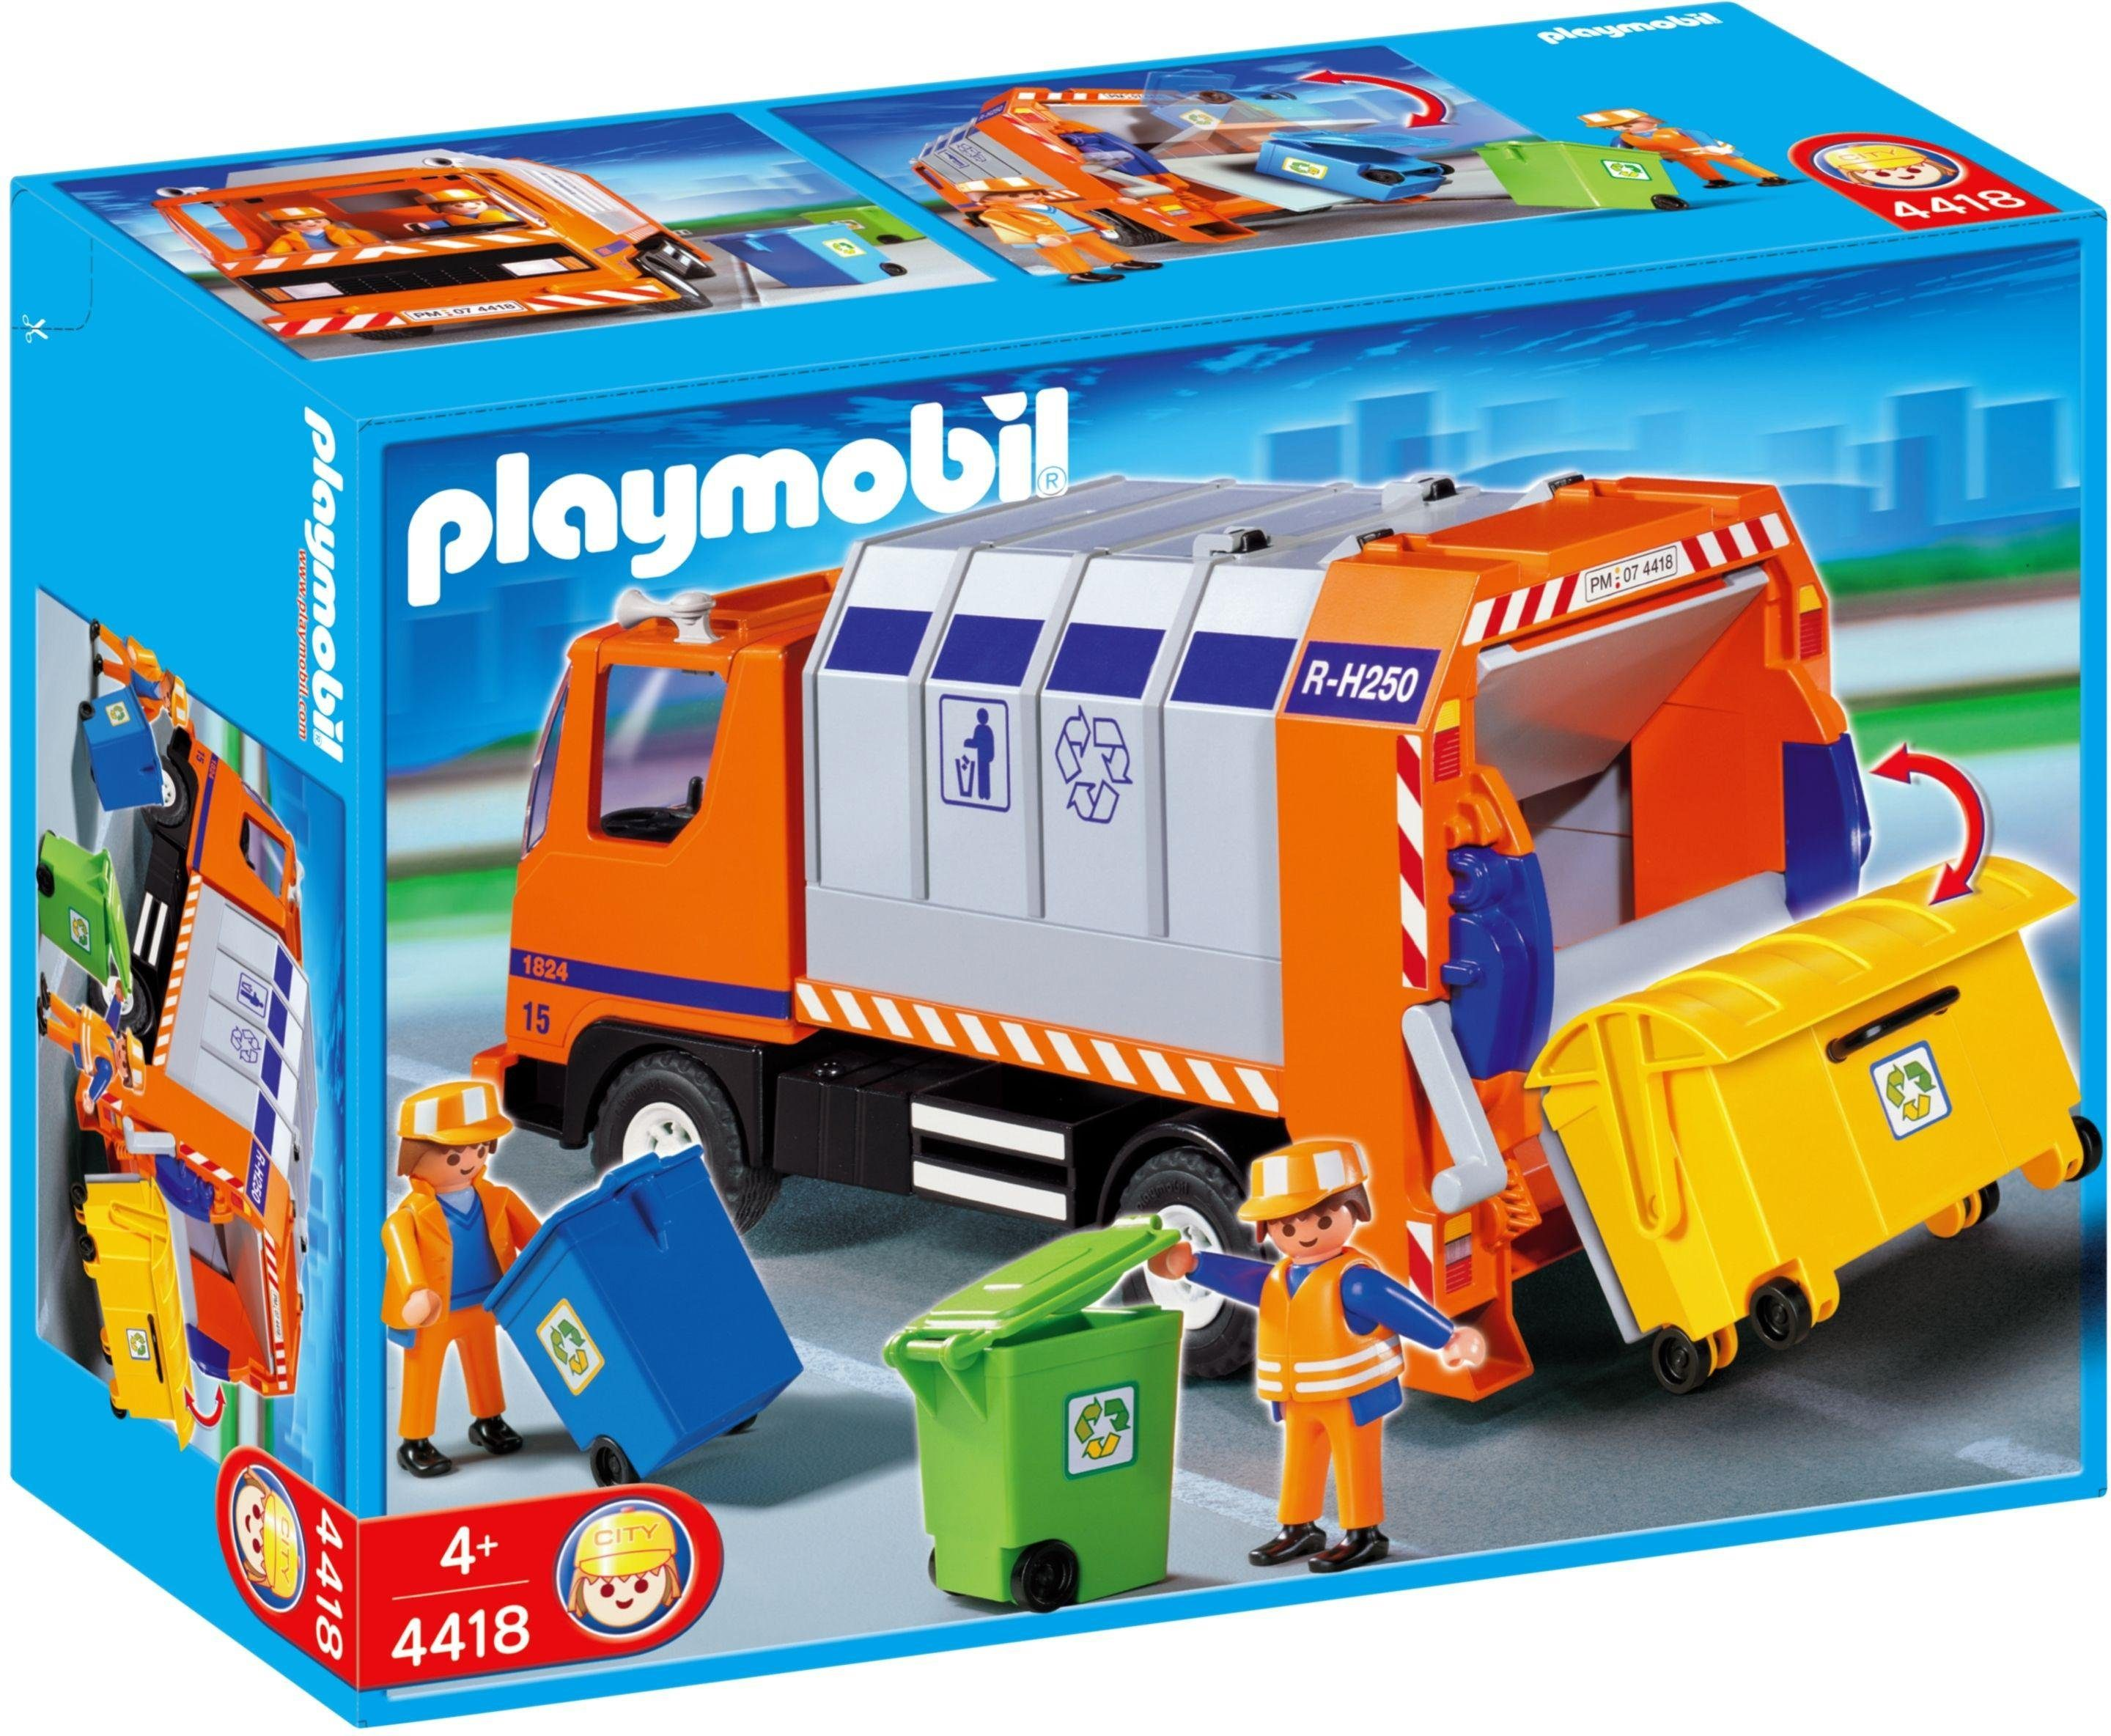 Playmobil® Konstruktions-Spielset »Müllabfuhr (4418), City Action«